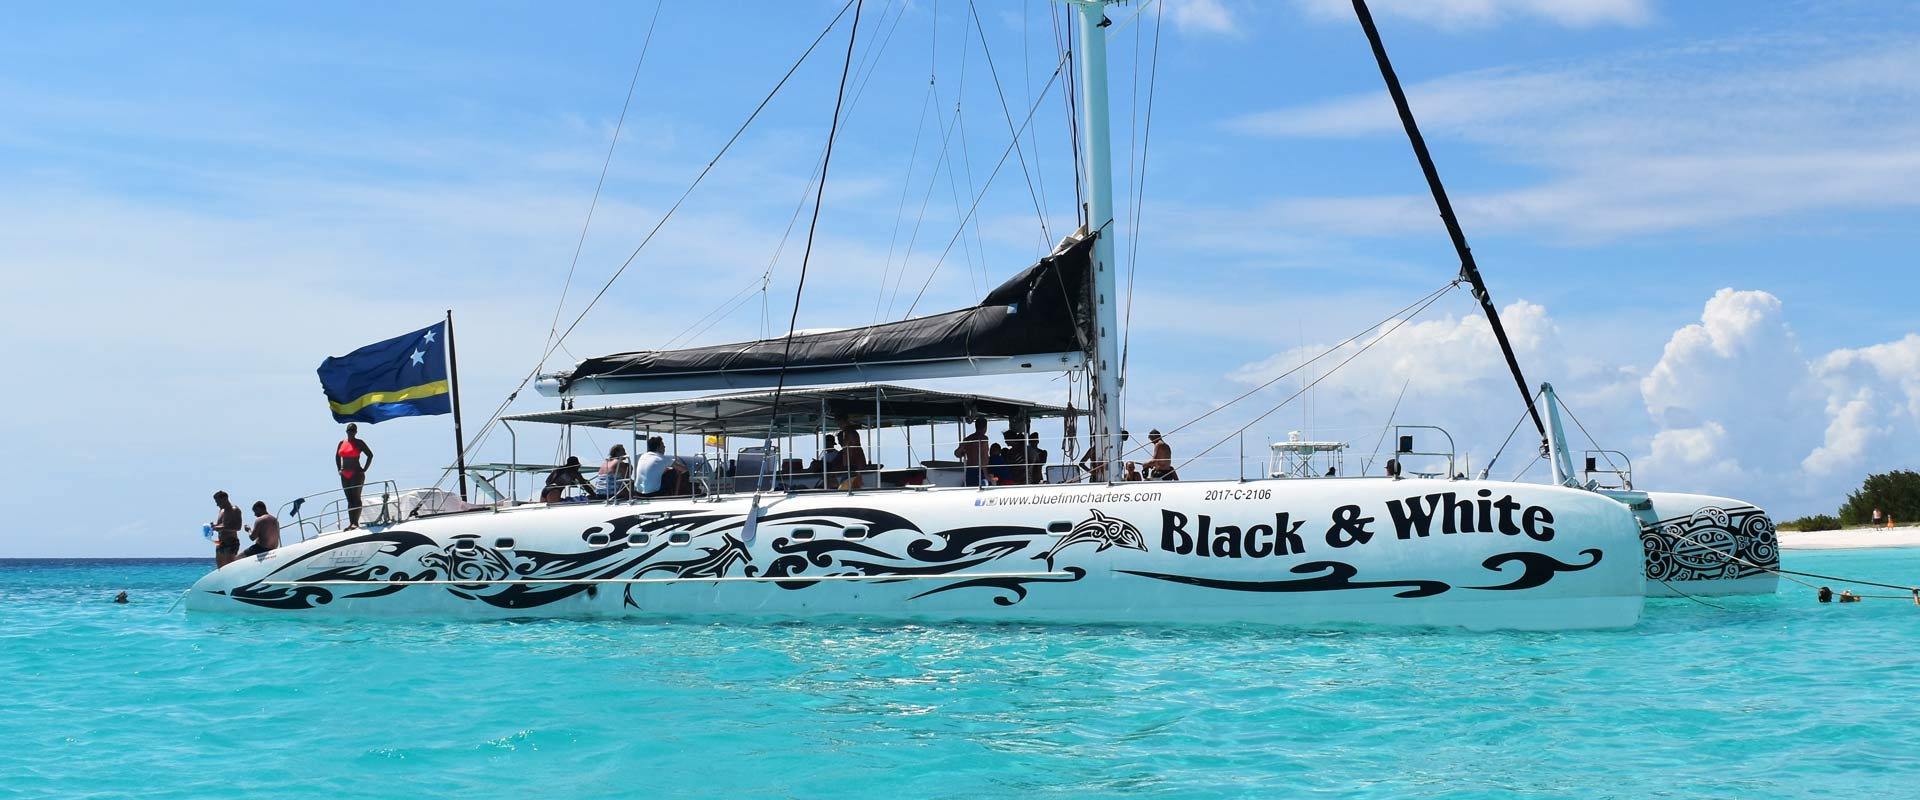 catamaran black & white klein curacao